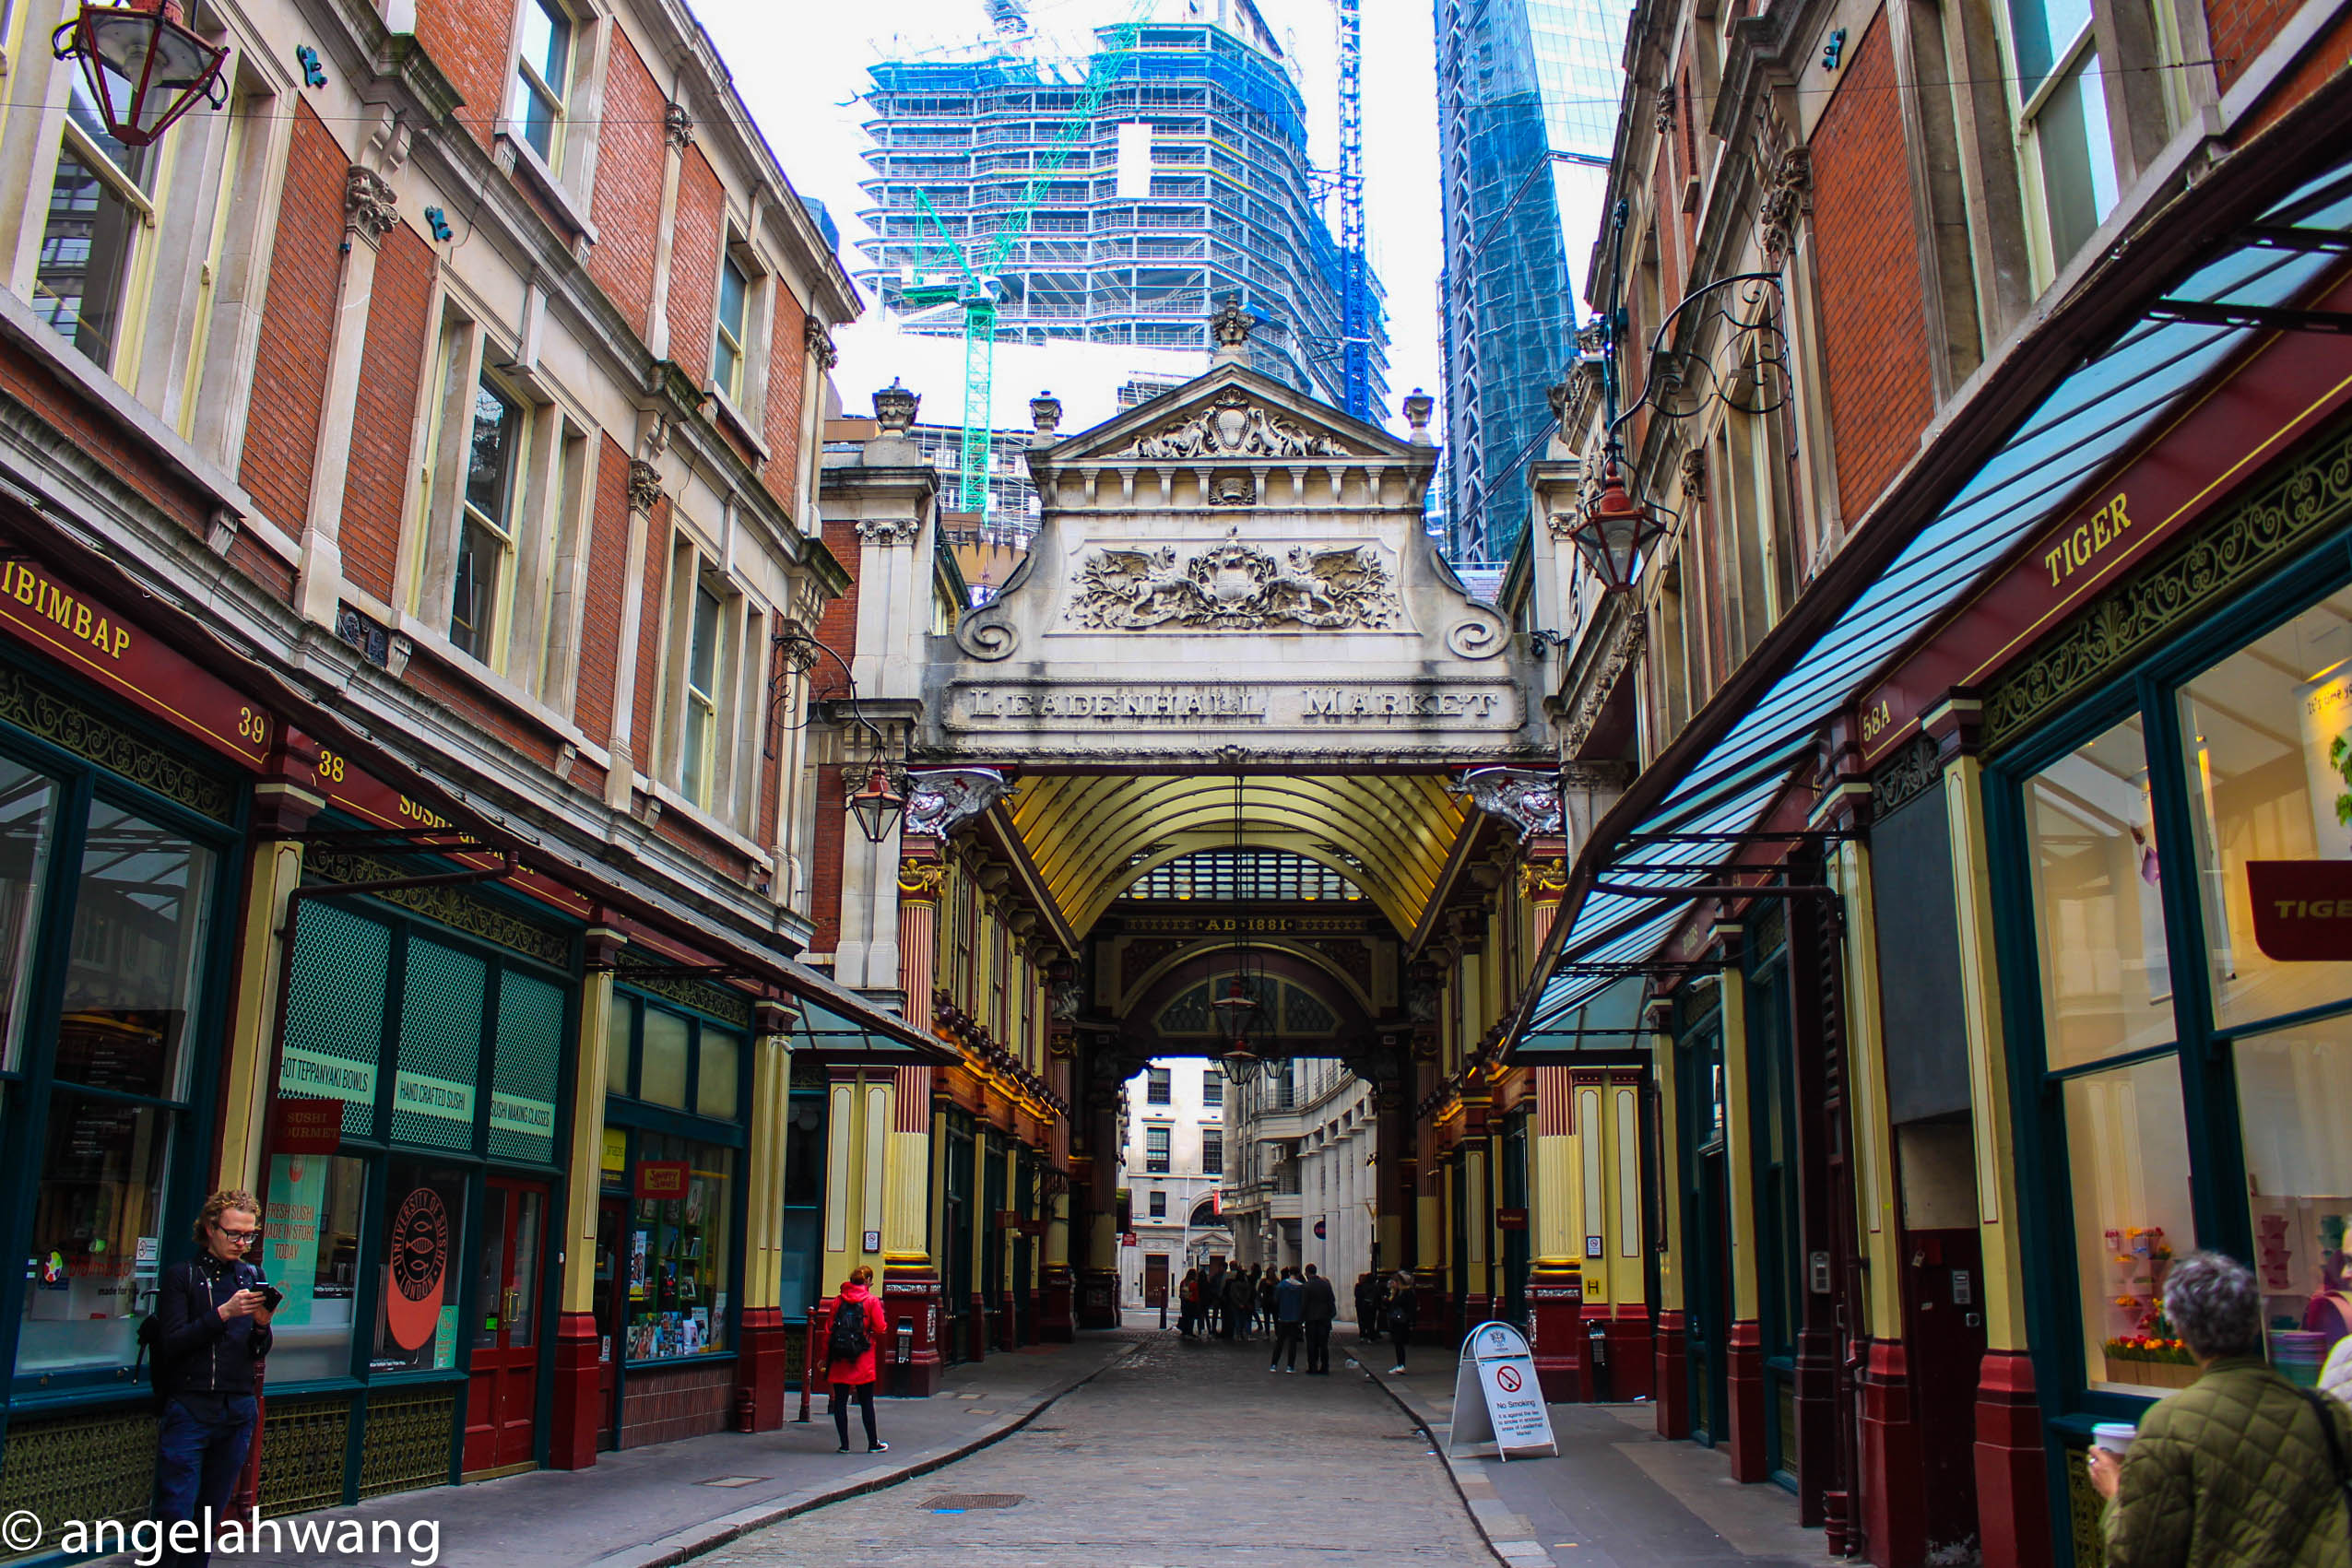 Central London - Leadenhall Market